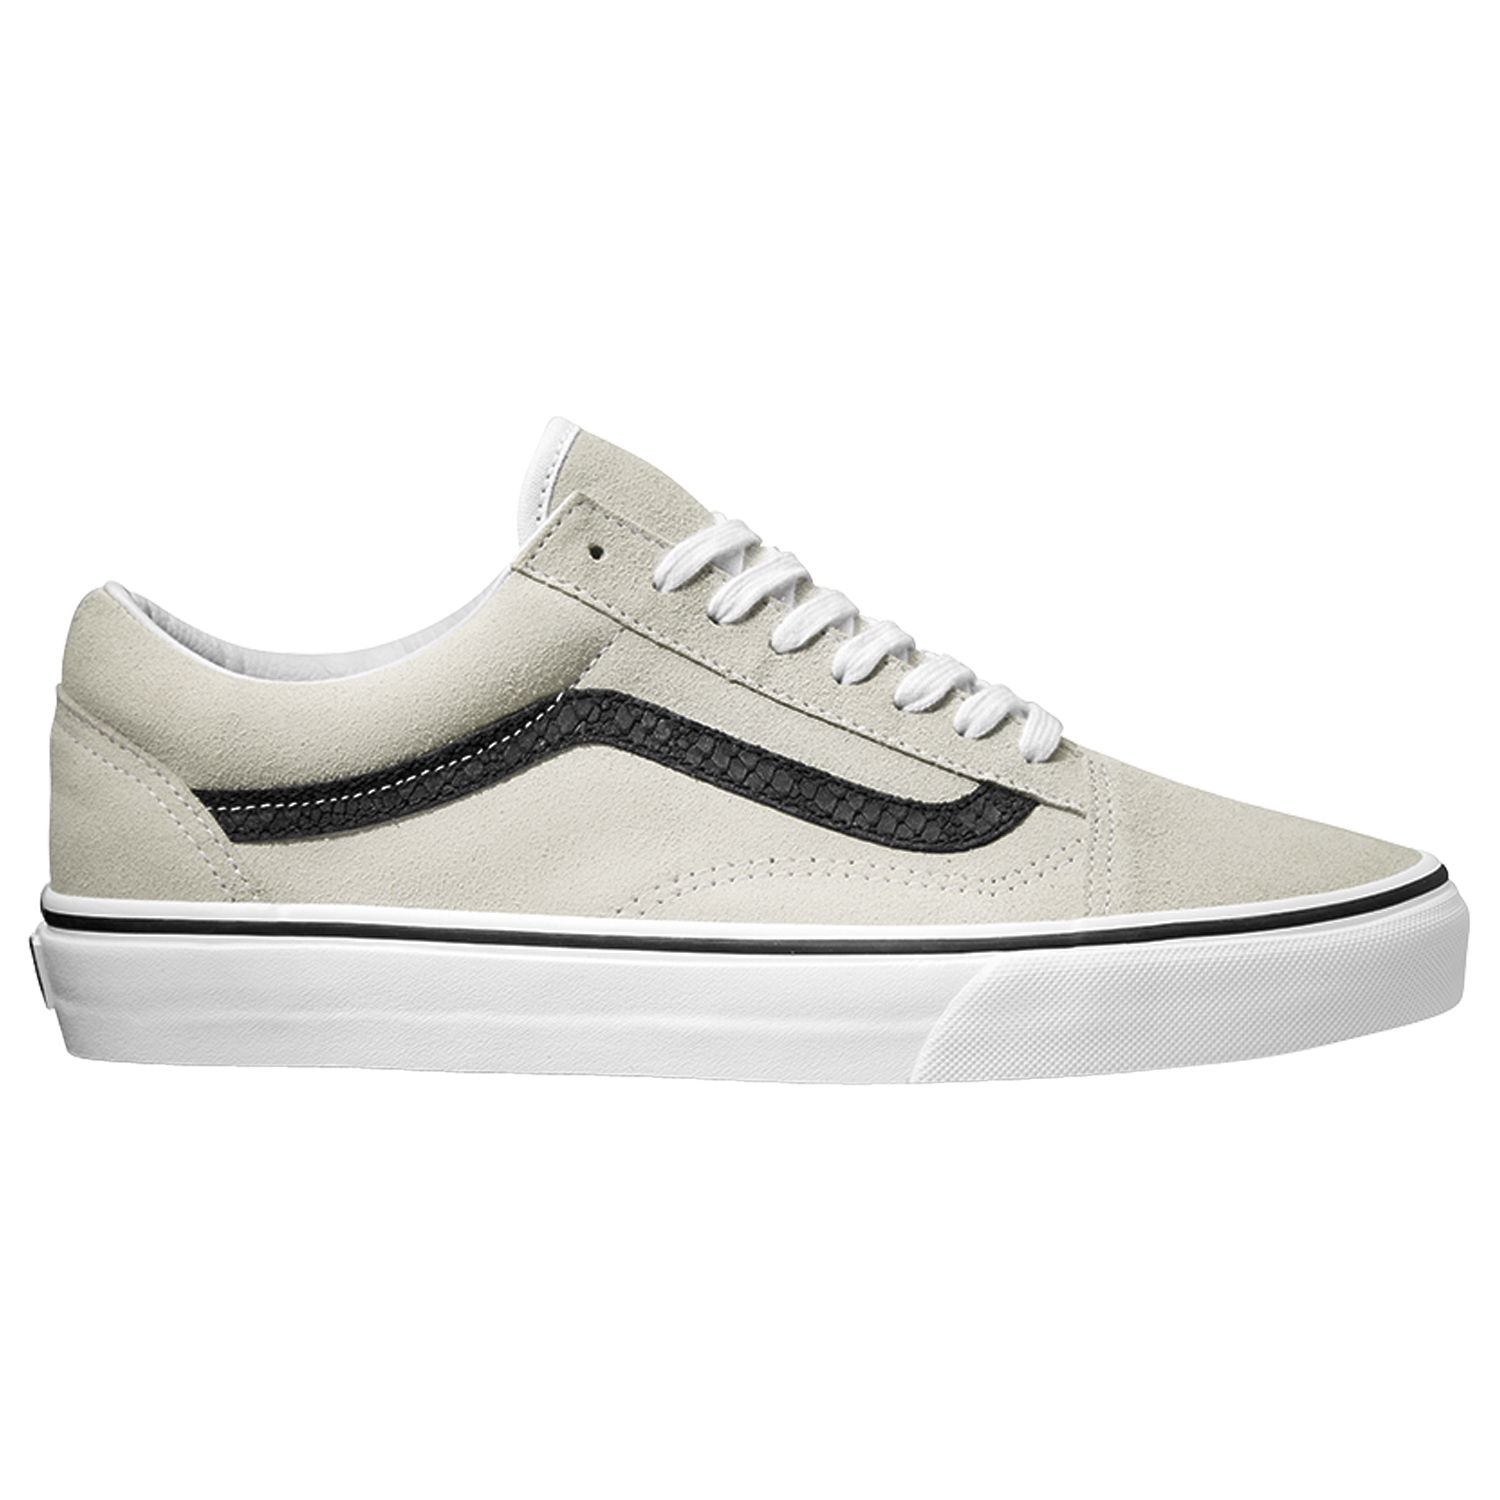 vans-old-skool-reptile-white-black-179-90